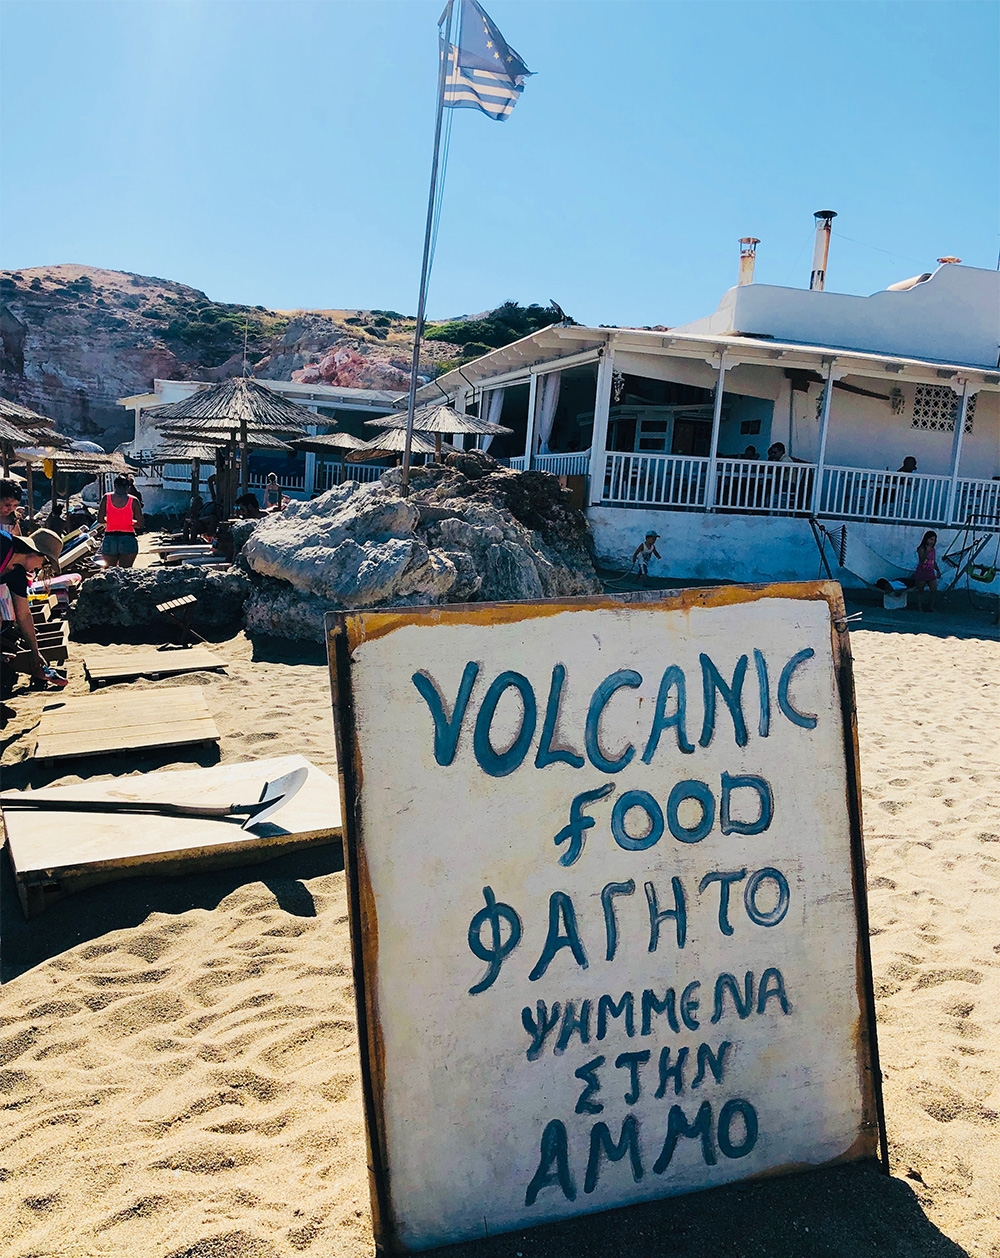 """An image of Sirrocco taverna at Paliochori Beach. A small white house with a wrap around verandah and Greek flag raised. A sign in the sand reads, """"Volcanic Food"""", as well as four lines of Greek writing."""